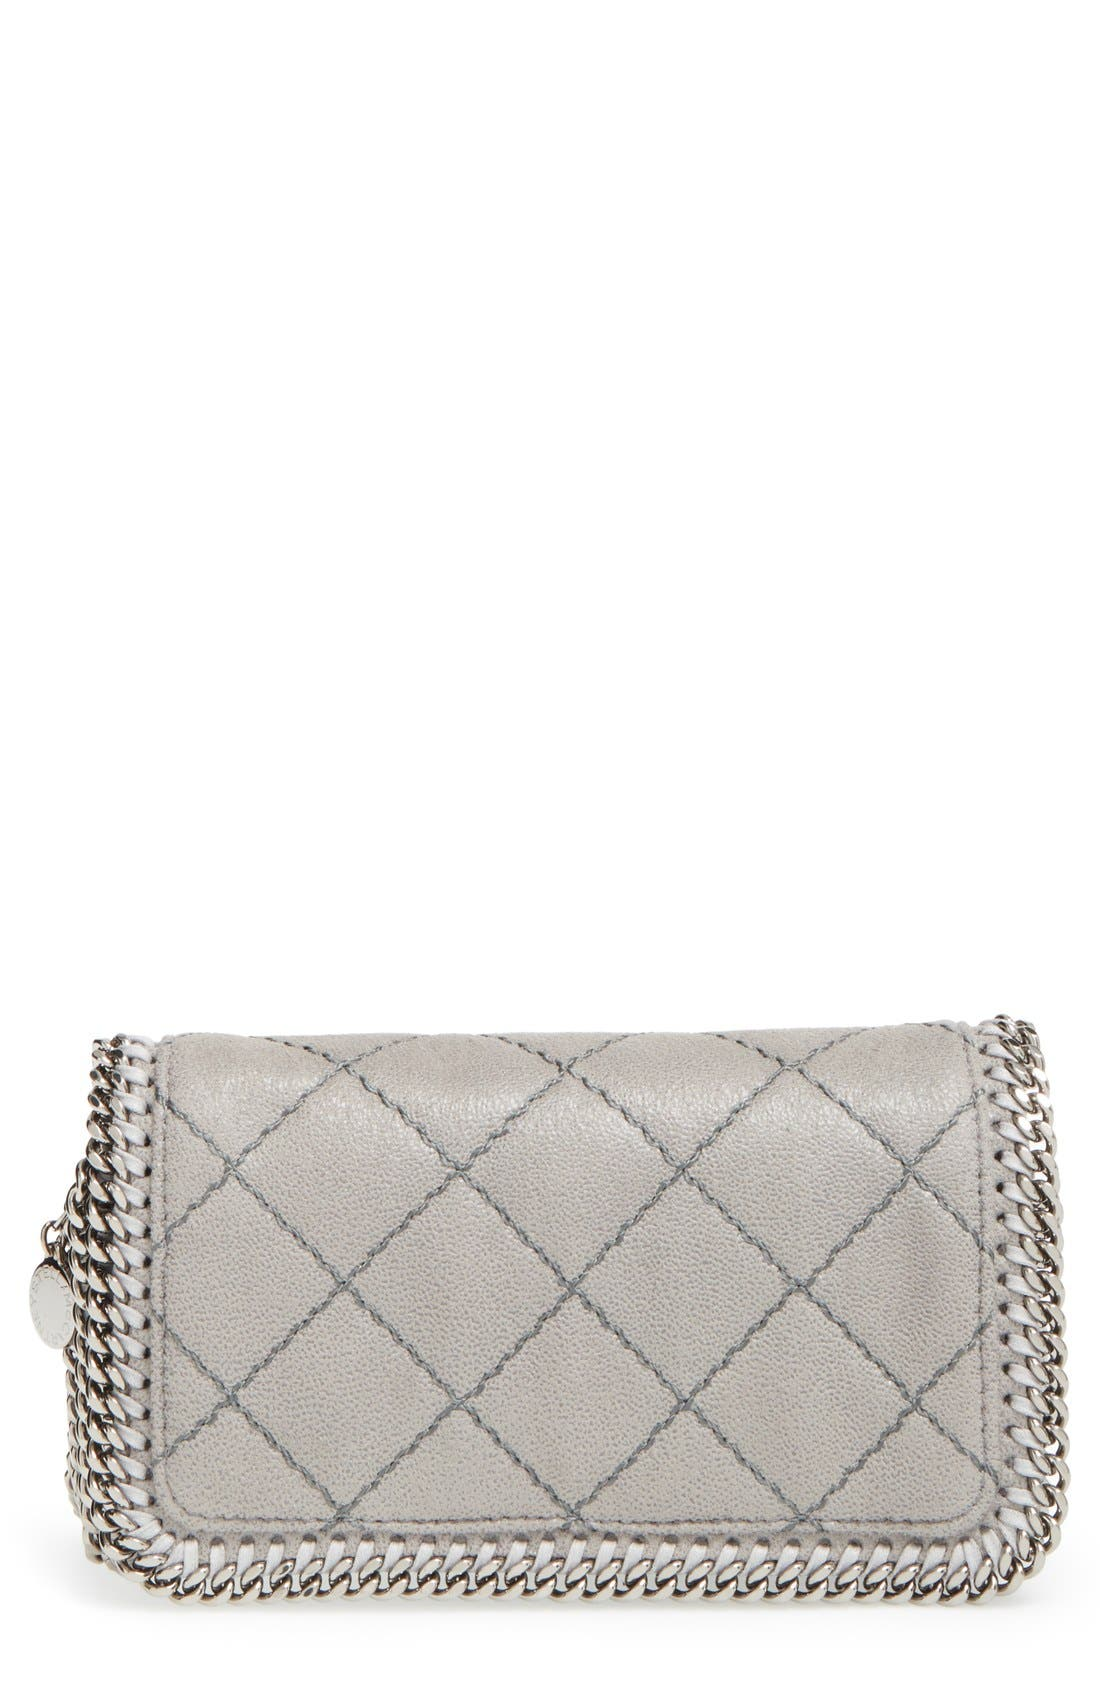 'Falabella' Quilted Faux Leather Crossbody Bag,                             Main thumbnail 1, color,                             021